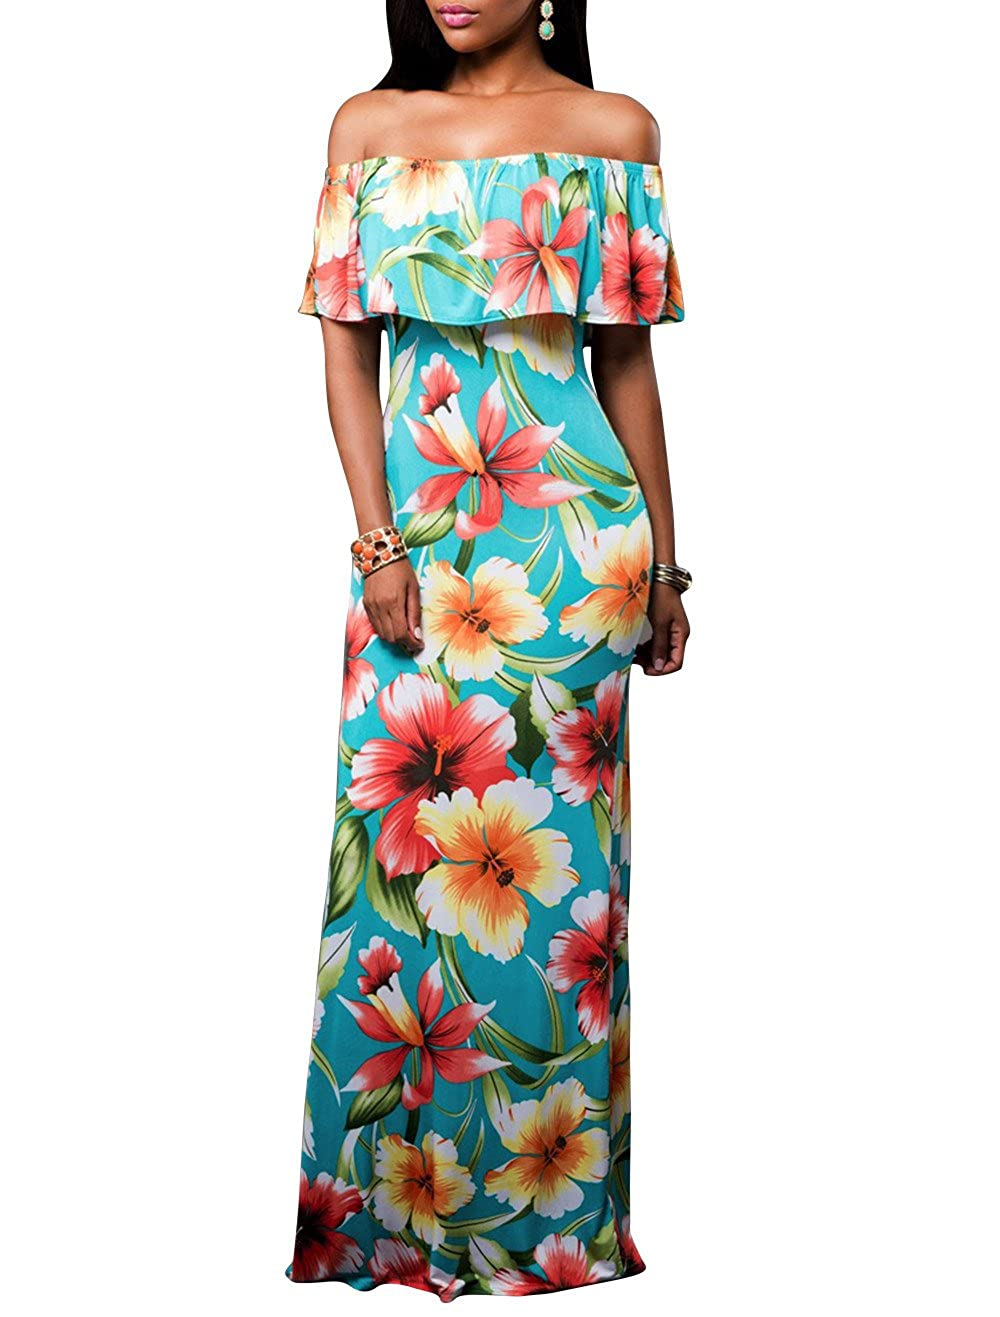 64333b4dd448 Floral Maxi Dress, is a indispensable Symbol in Summer. Off Shoulder,  Ruffle and Close-fitting Design, Let Your Nice Curve Figure to Stand Out  Markedly.